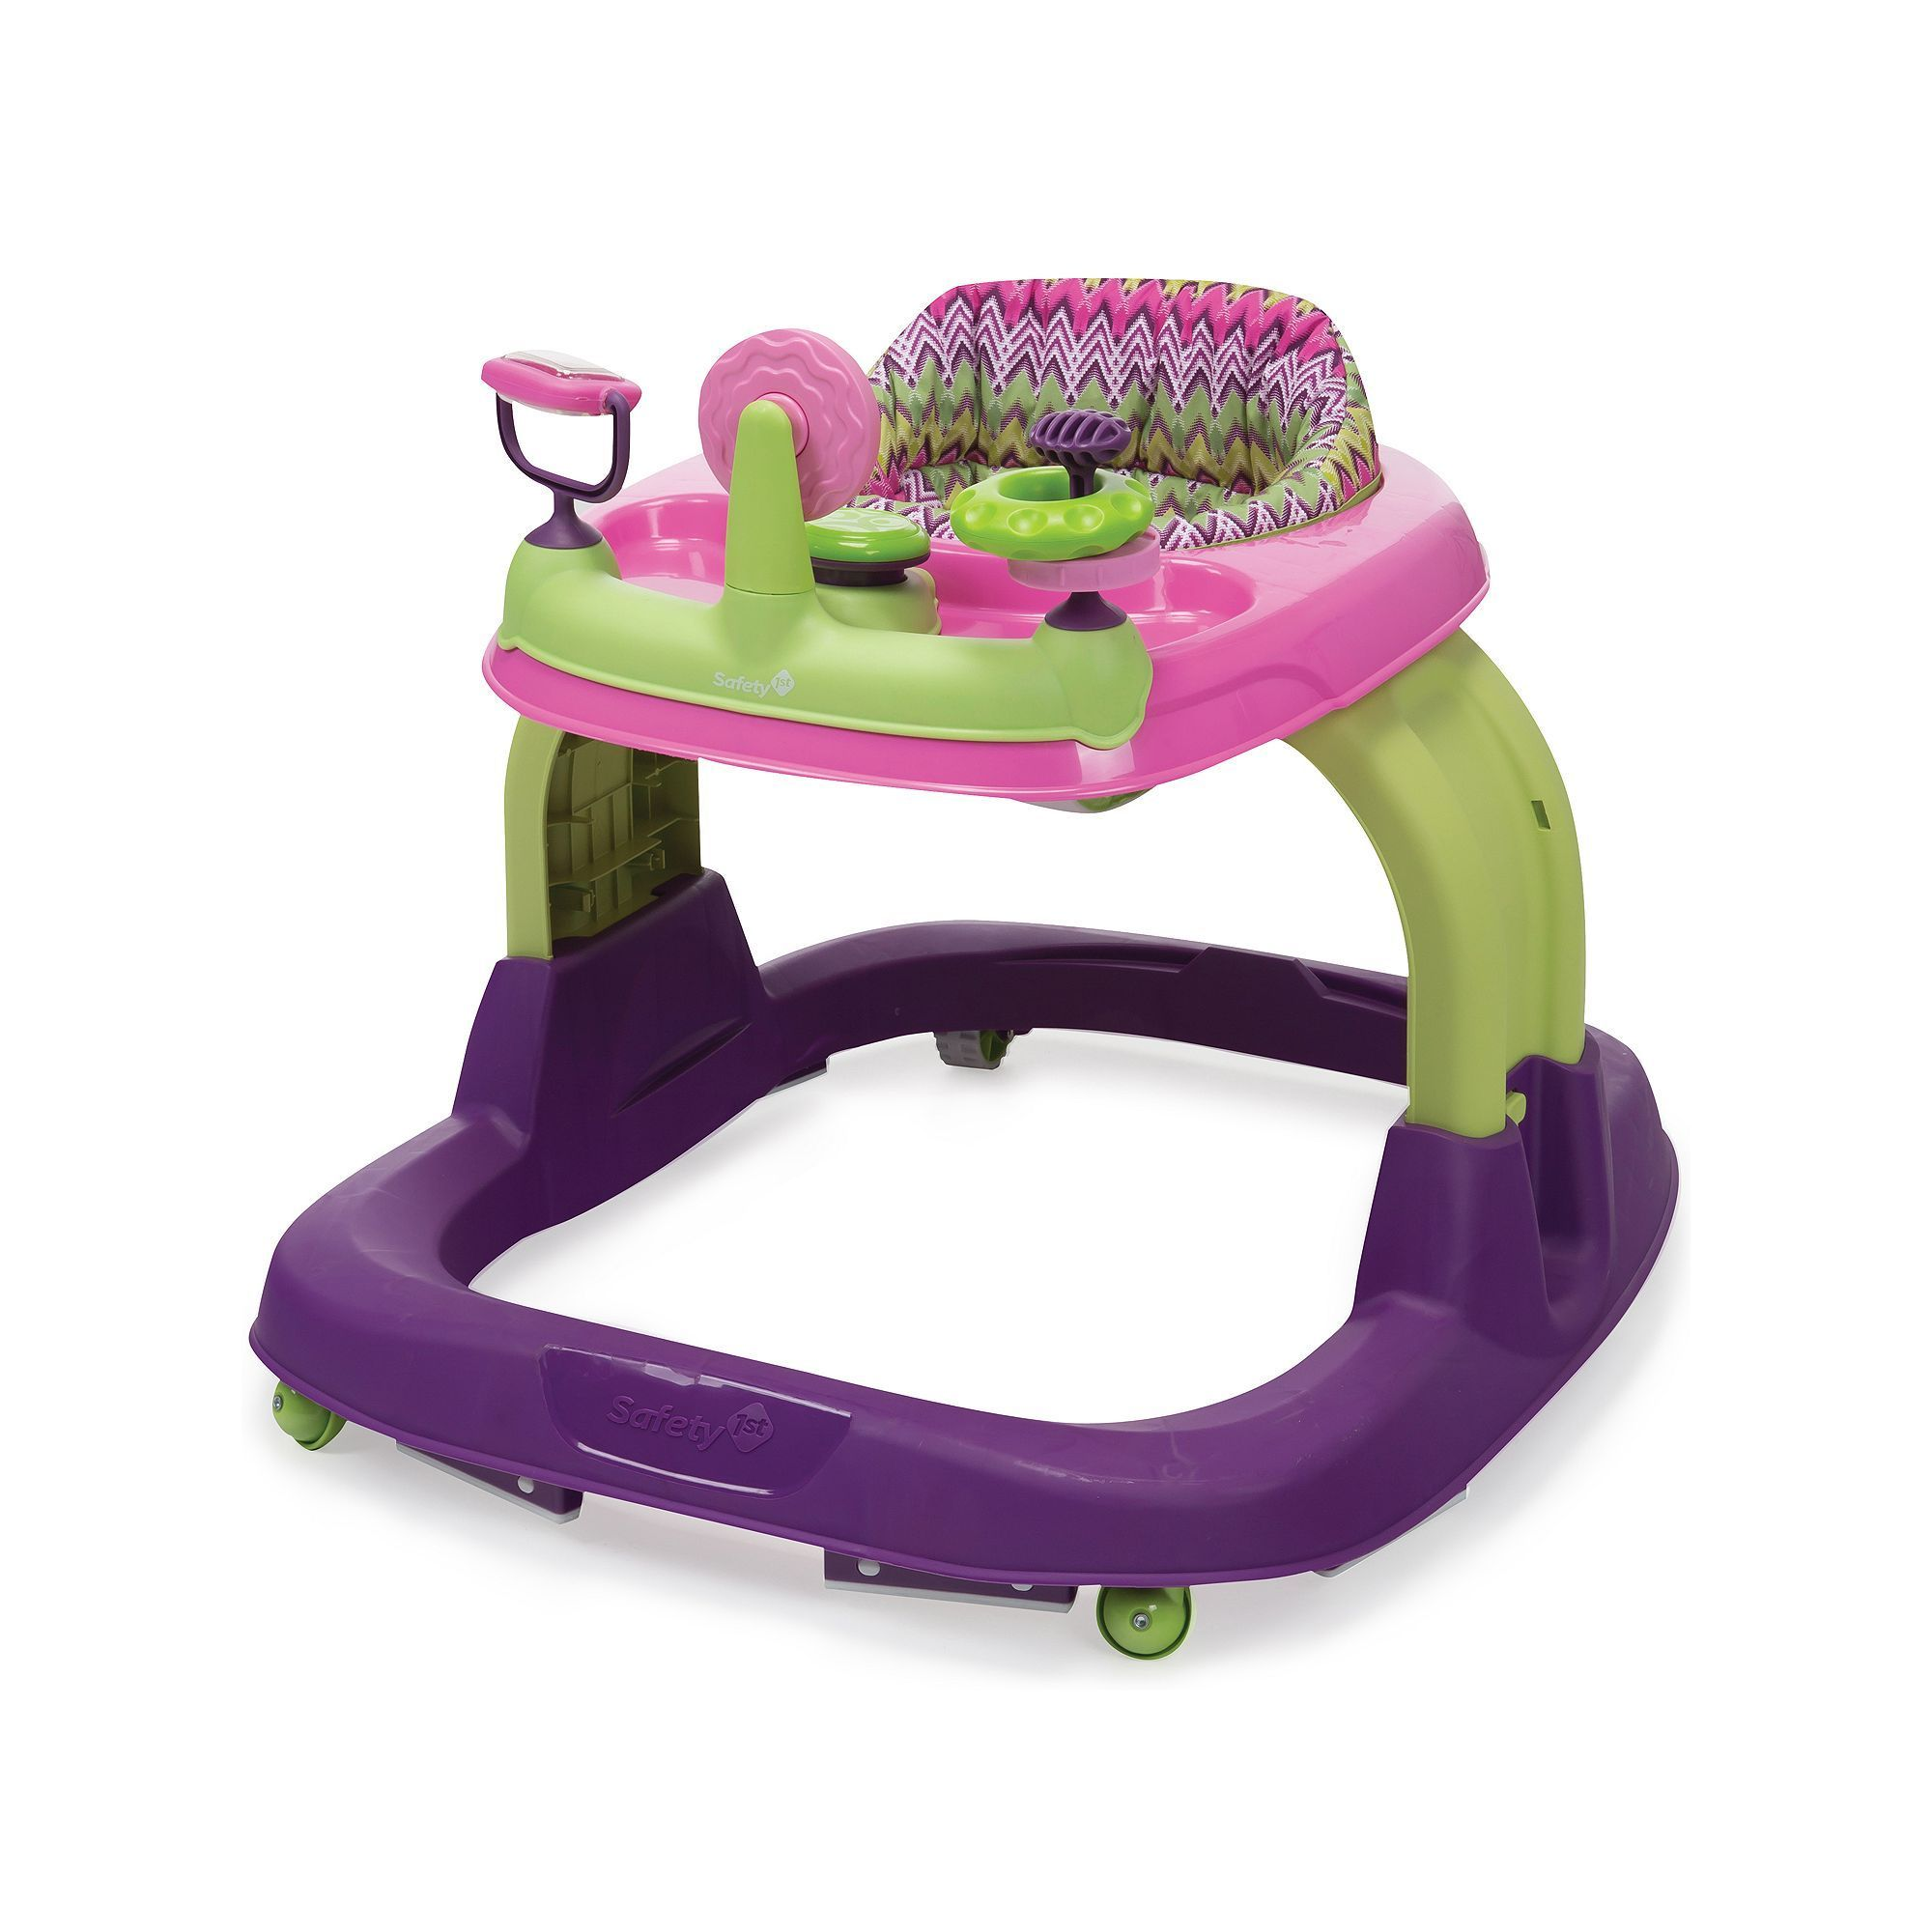 Safety 1st Ready Set Walk! Walker, Multicolor Infant